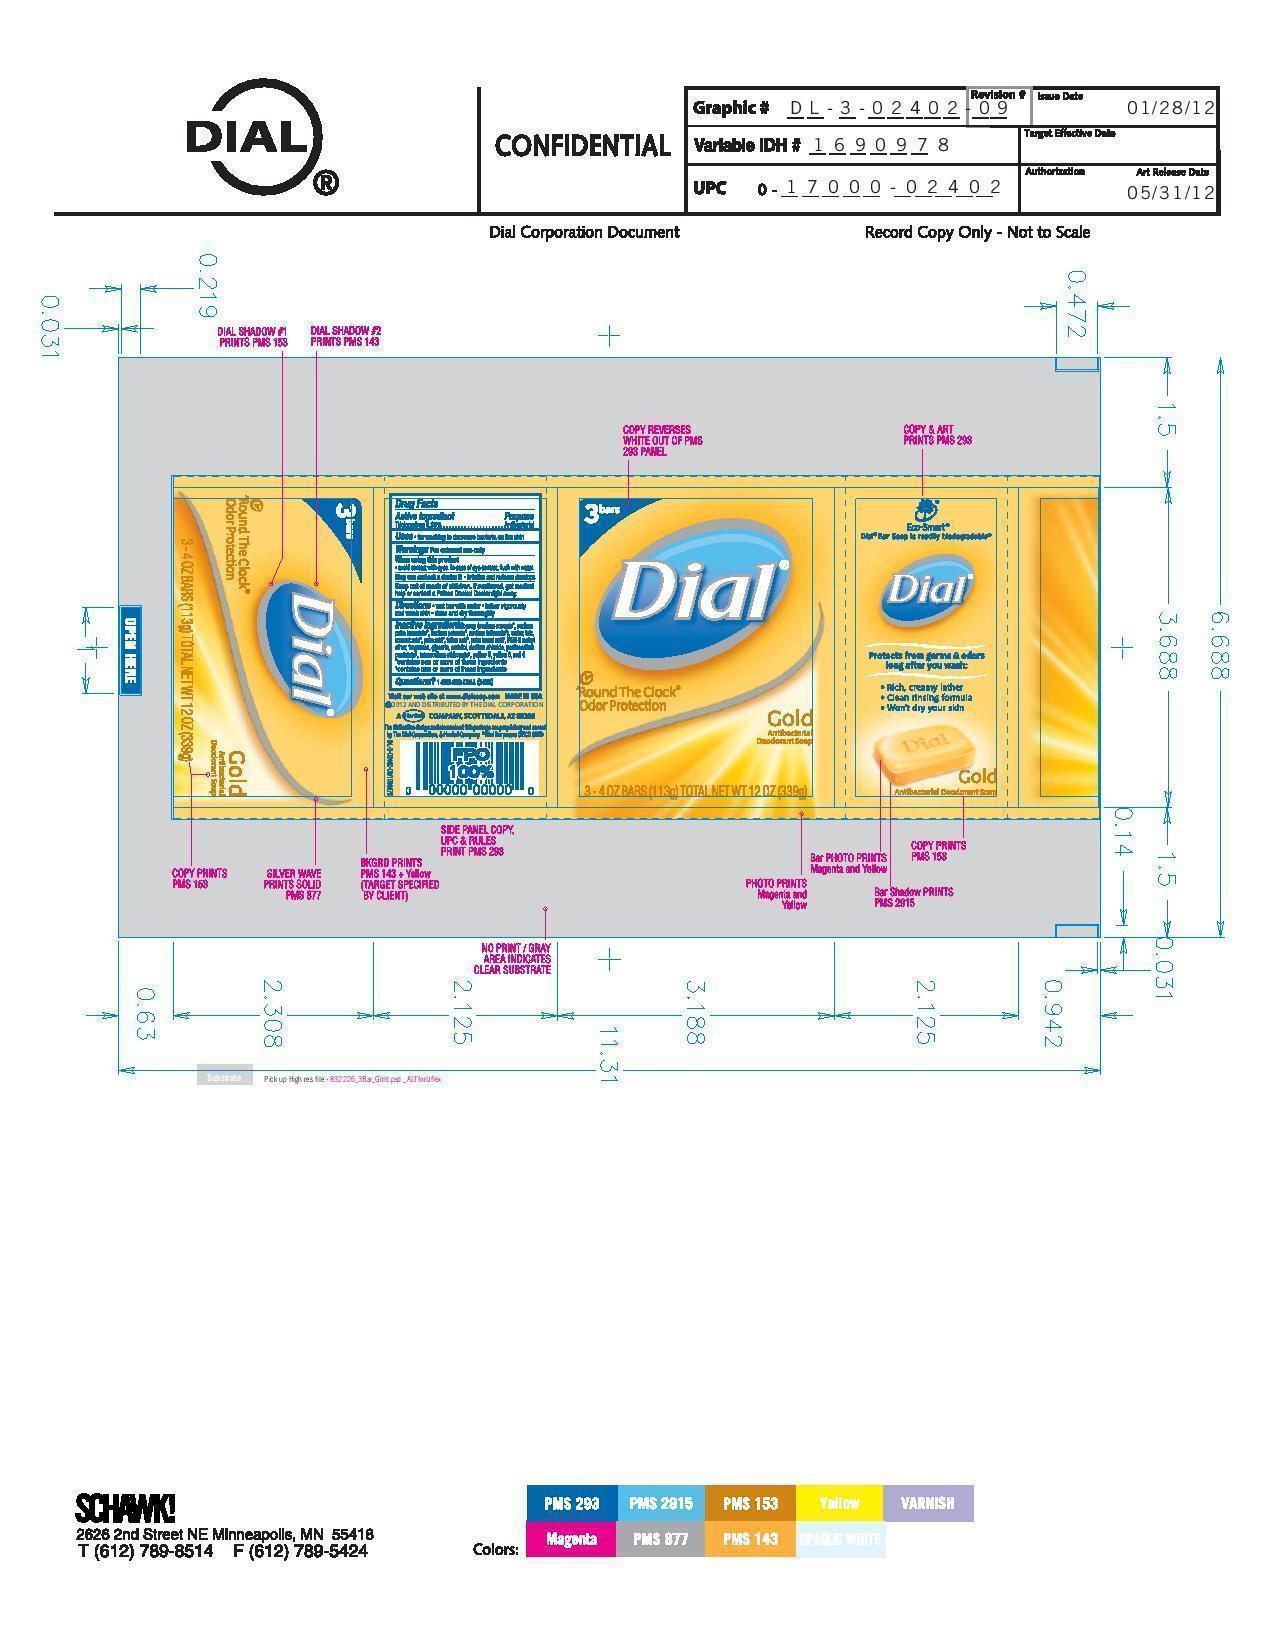 Dial Antibacterial (Triclocarban) Soap [Vvf Illinois Services Llc]